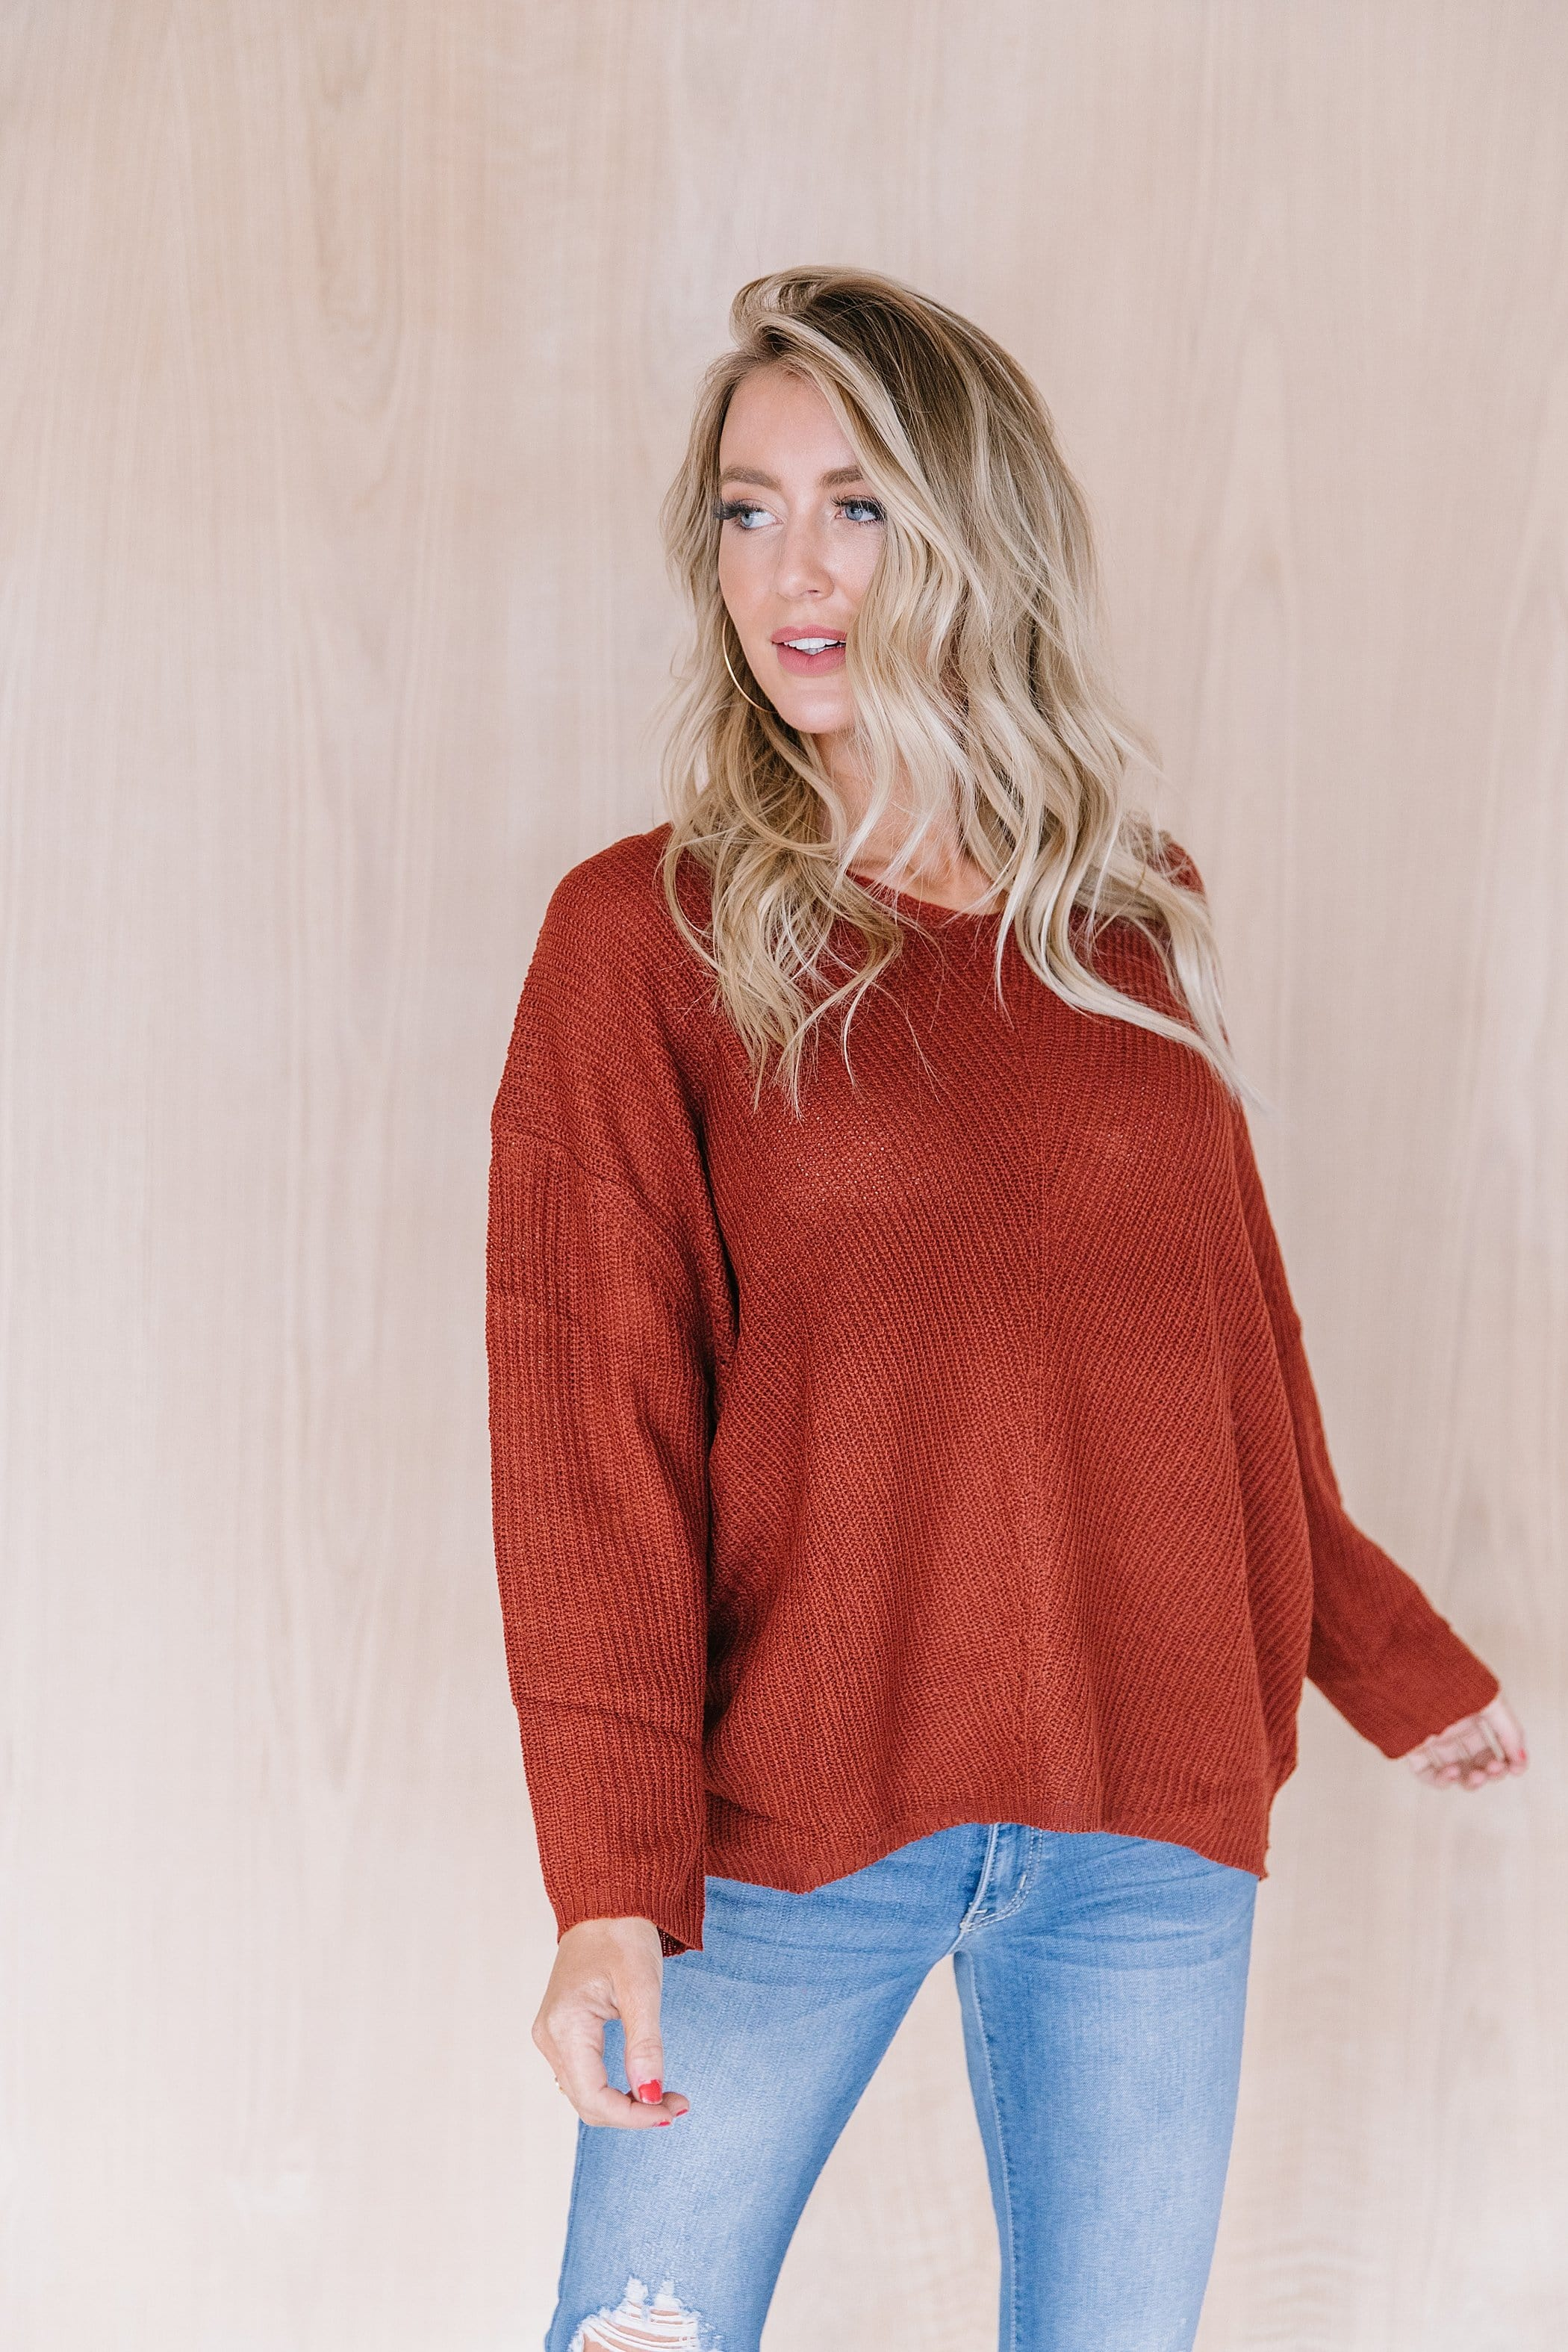 The Davis Knit Sweater in Spice